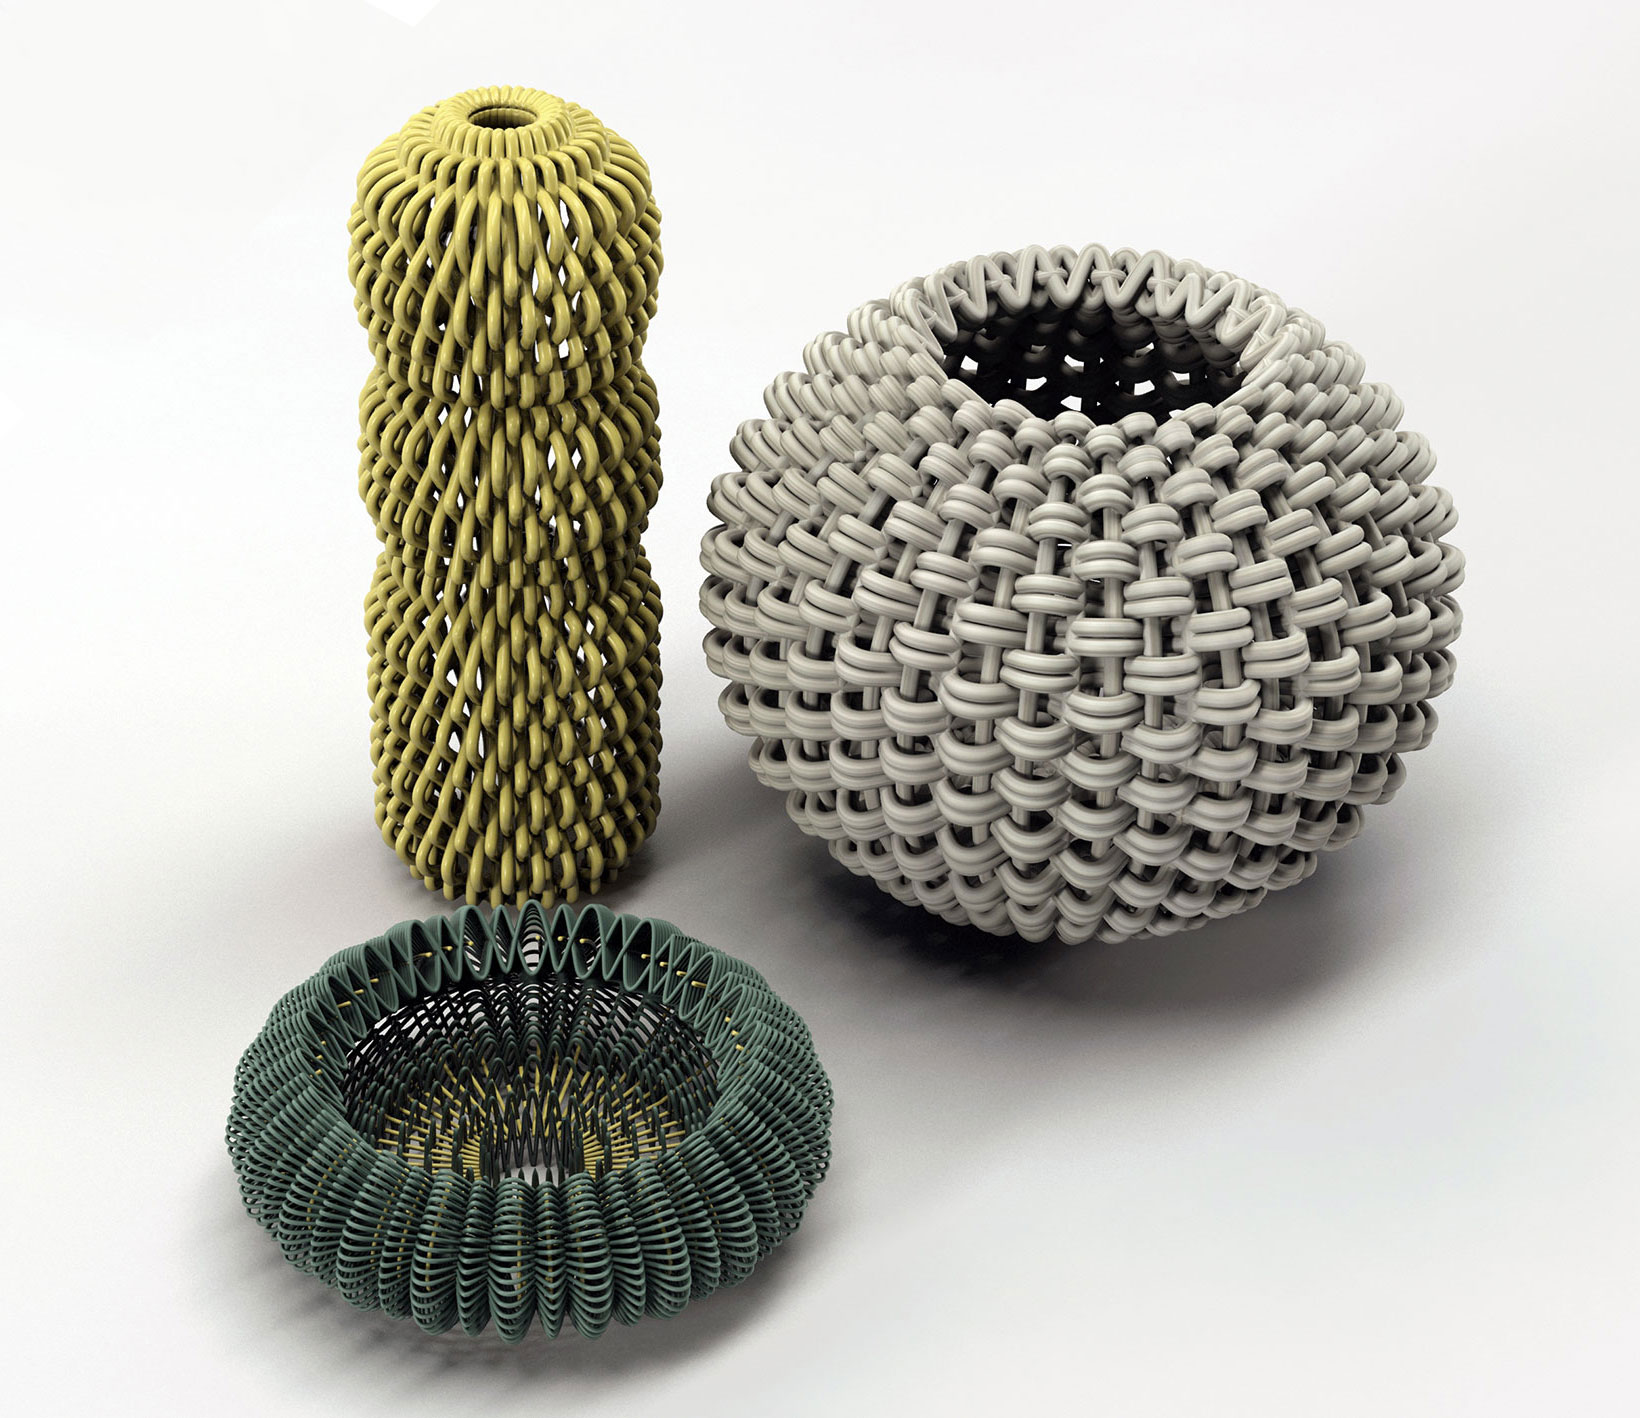 "Designexperiments of knitting structures in the shape of a vase based on para 3d paraflow ""knitting pattern"". All vases are designed for 3d printing. The experiments are done by students as part of ""Digitales Entwerfen 3"", school of design Mainz Germany, lead by Prof. Klaus Teltenkötter, ""Digital Design and mediaarchitecture"". Students: Marianne Statt, Mona Heßler, Johannes Helm, Alisha Kraus, Carla Thalmeier, Julian Vettermann For more information: www.designstrategies.org"